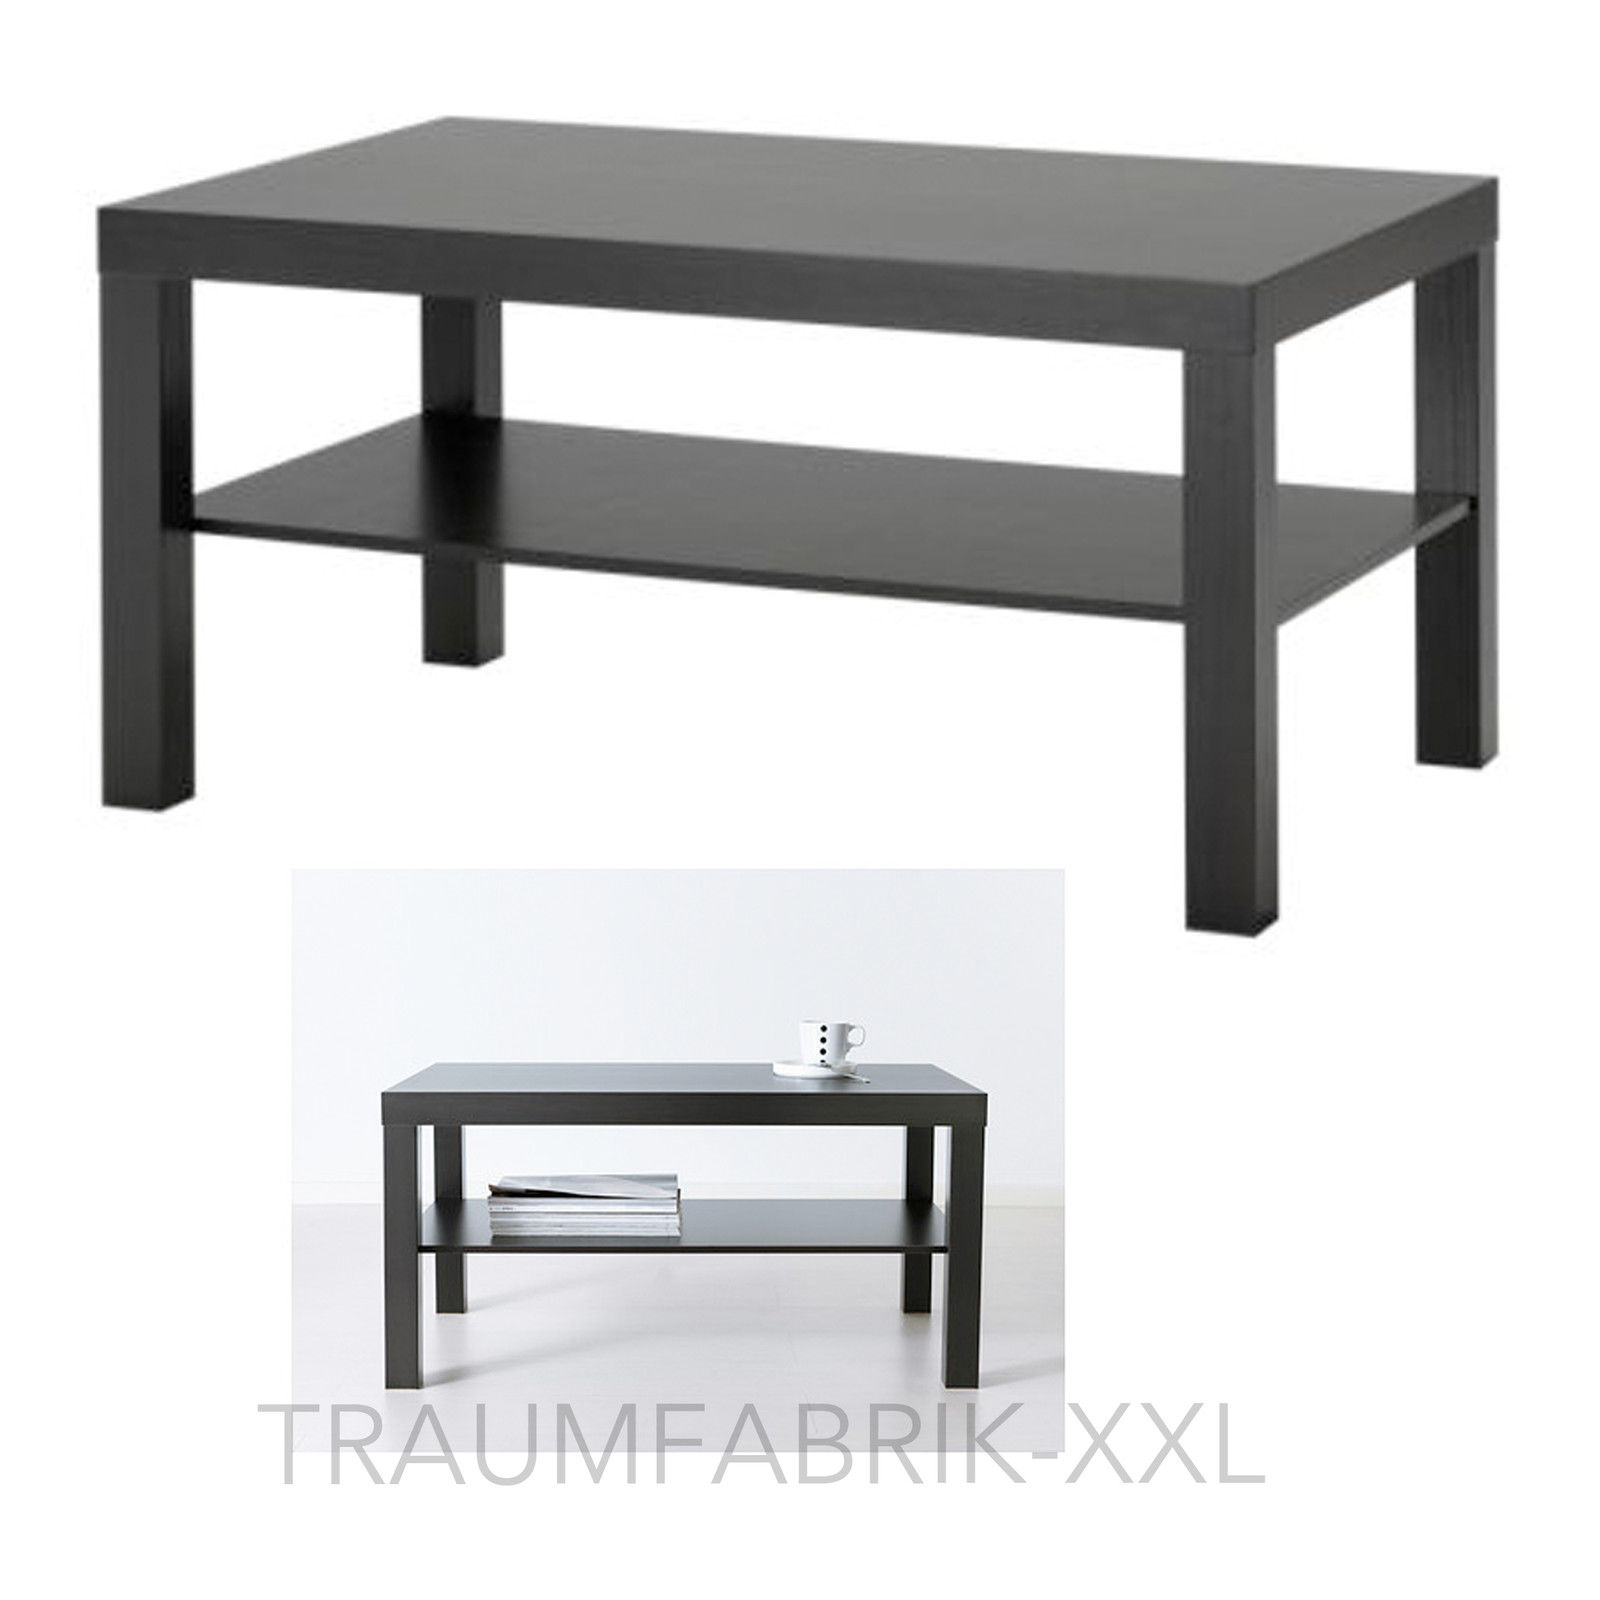 ikea lack couchtisch 90 55 cm wohnzimmertisch schwarz ablagetisch lounge tisch traumfabrik xxl. Black Bedroom Furniture Sets. Home Design Ideas